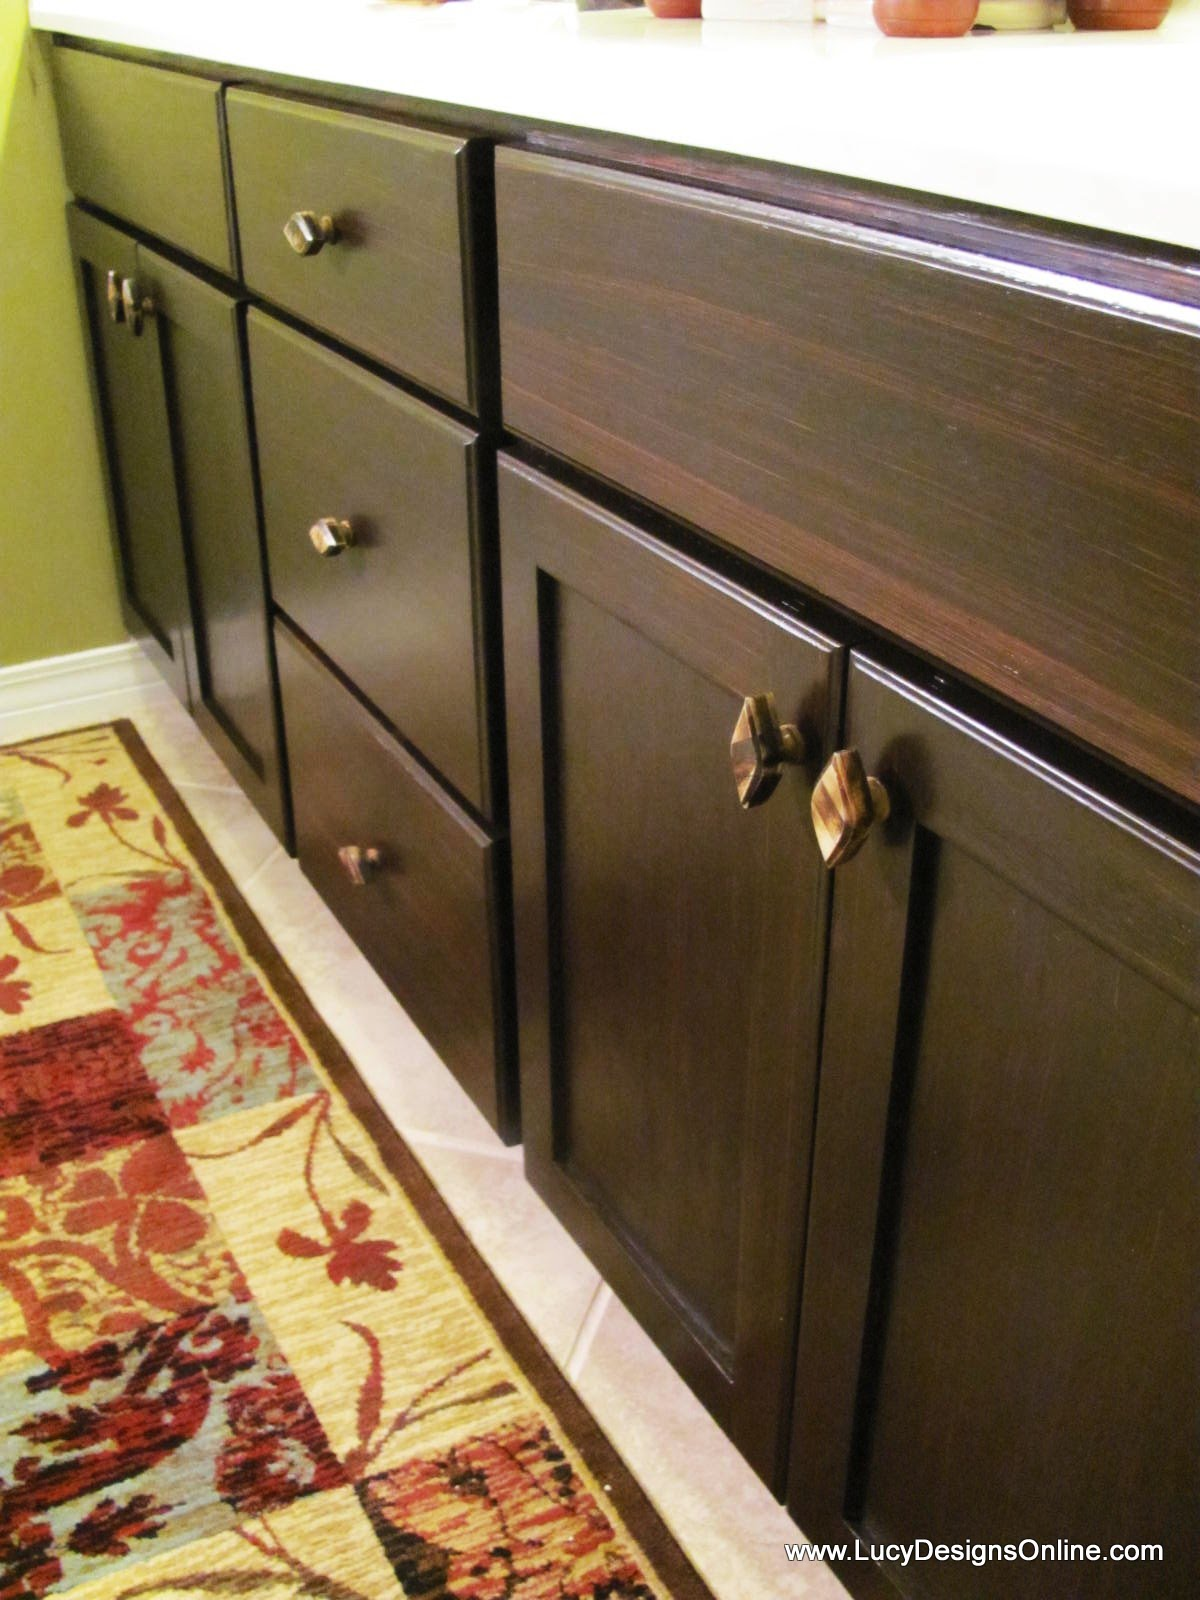 How To Use Gel Stain Diy Stained Master Bath Cabinet Makeover Lucy Designs